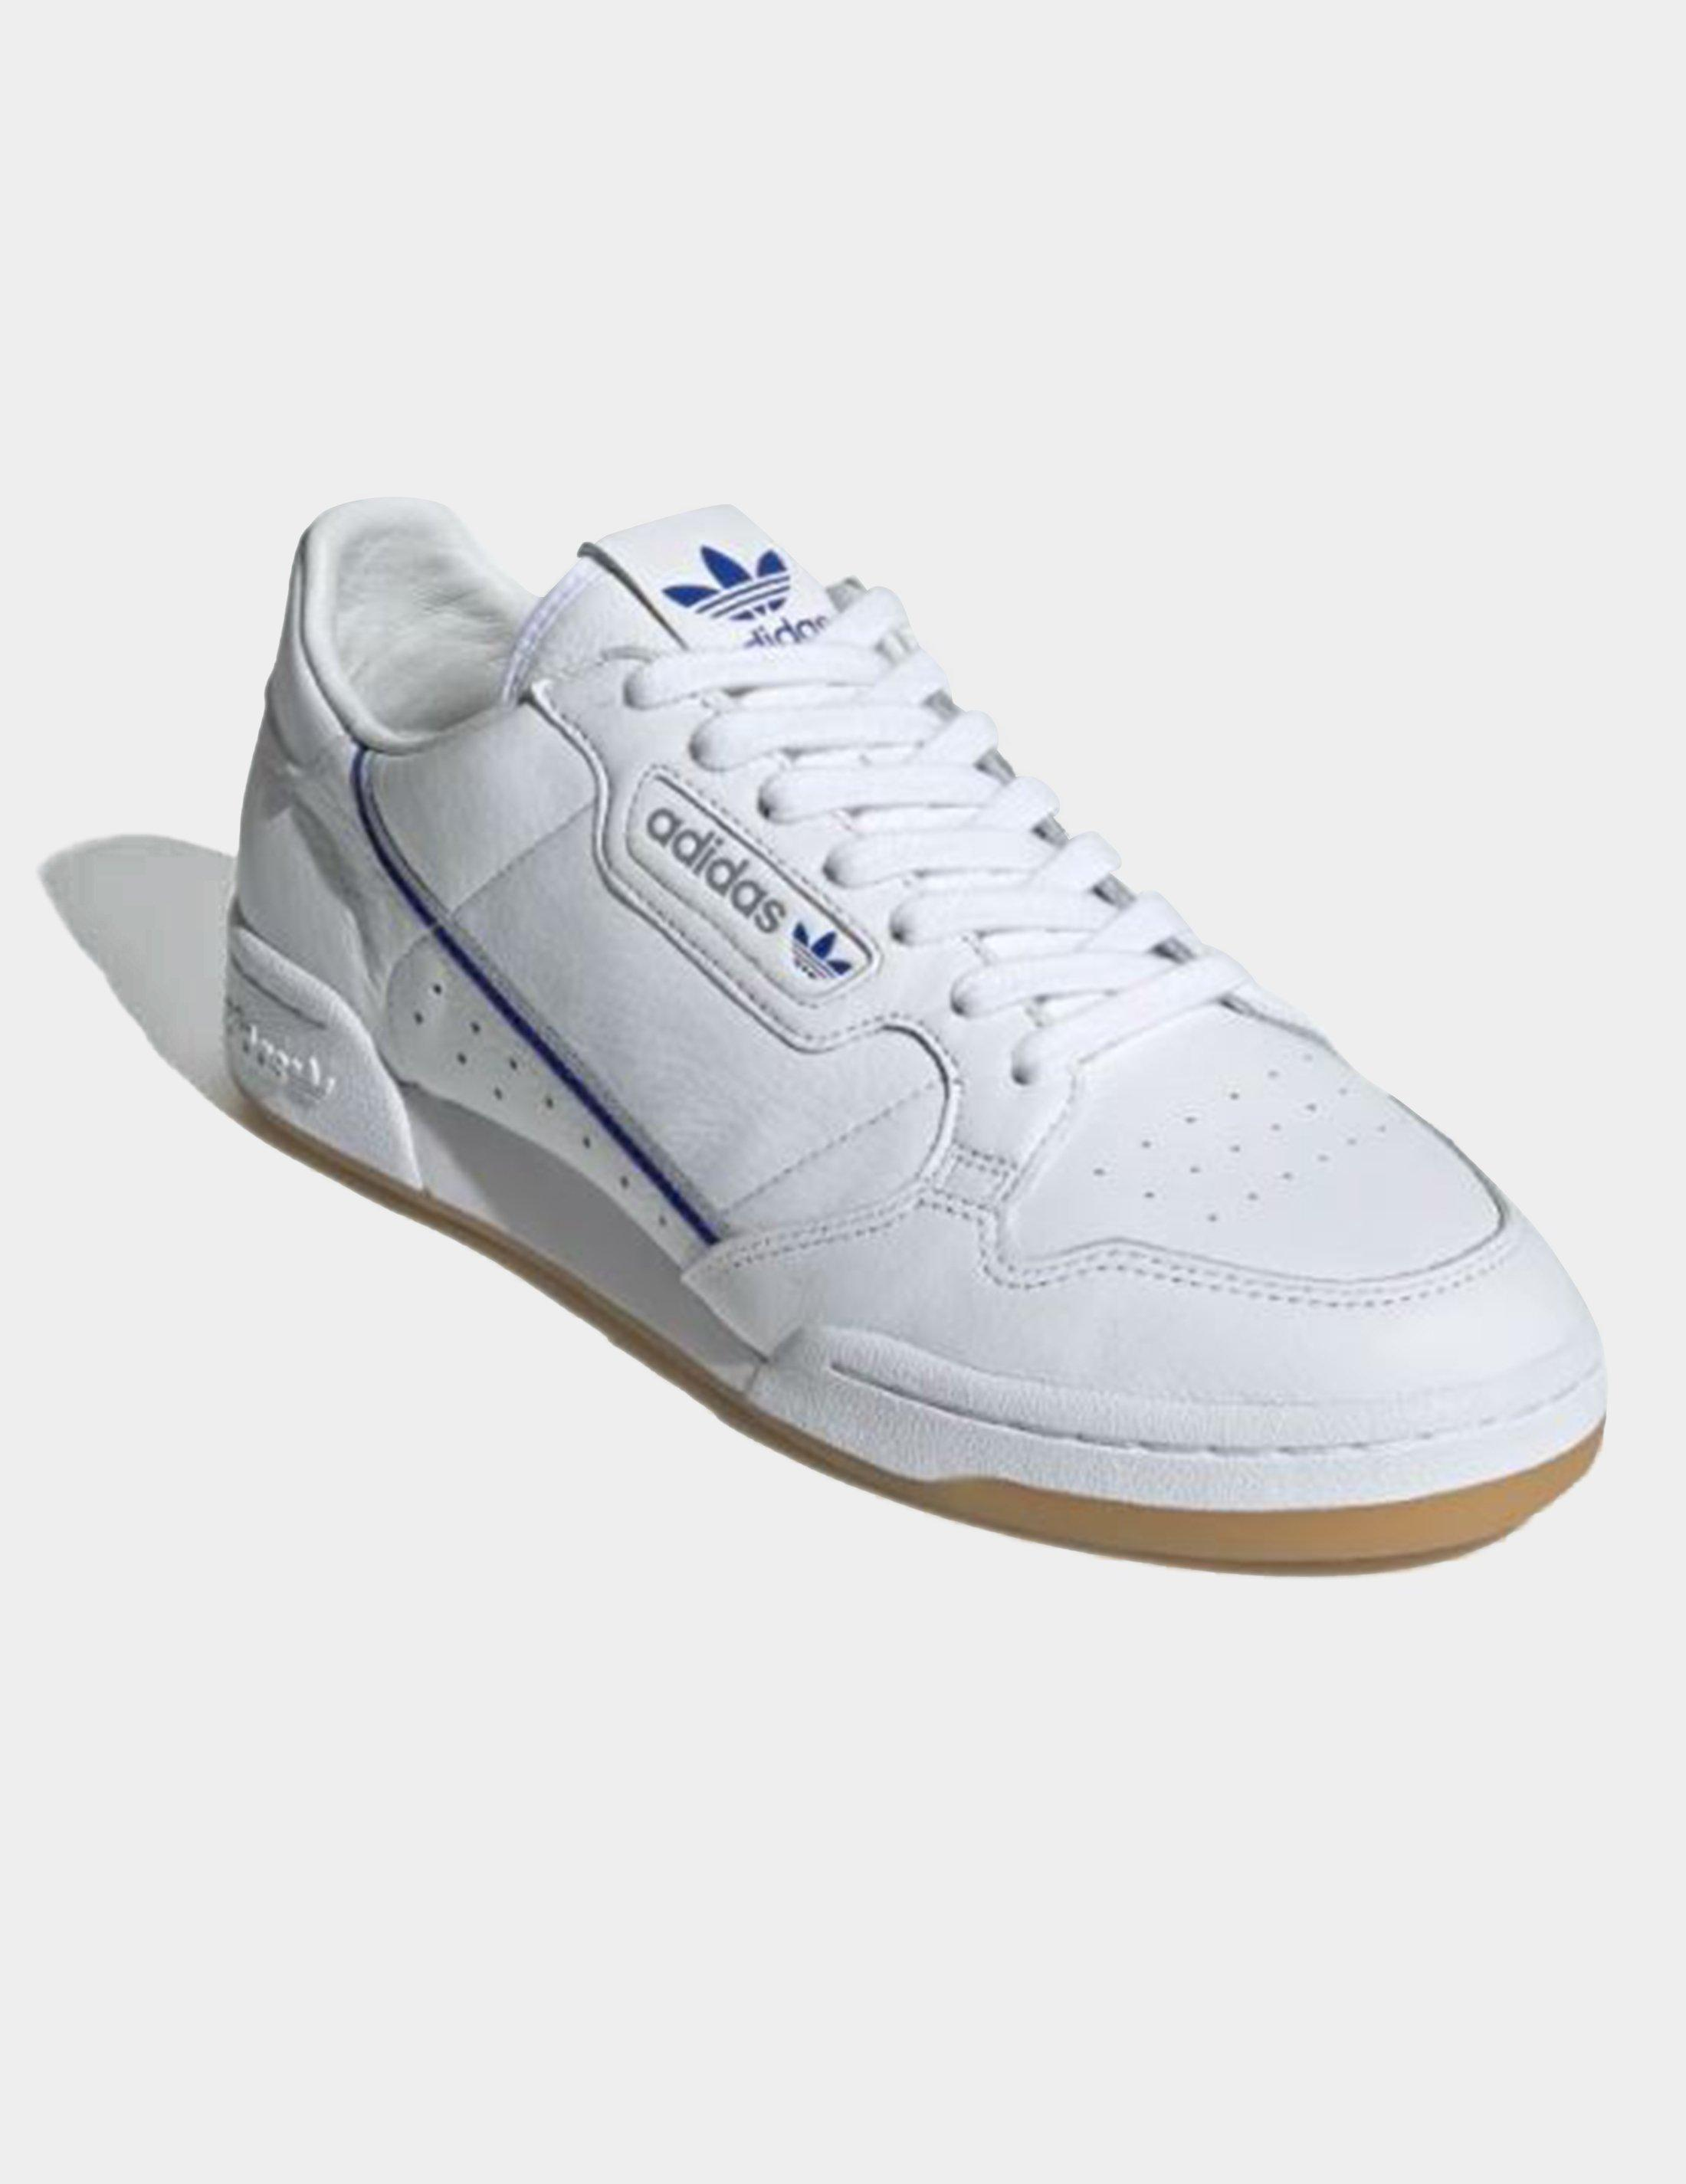 new style 26c75 4a8b6 ... detailed images Lyst - Adidas Originals Mens X Tfl Continental 80 White  in White for Men ...